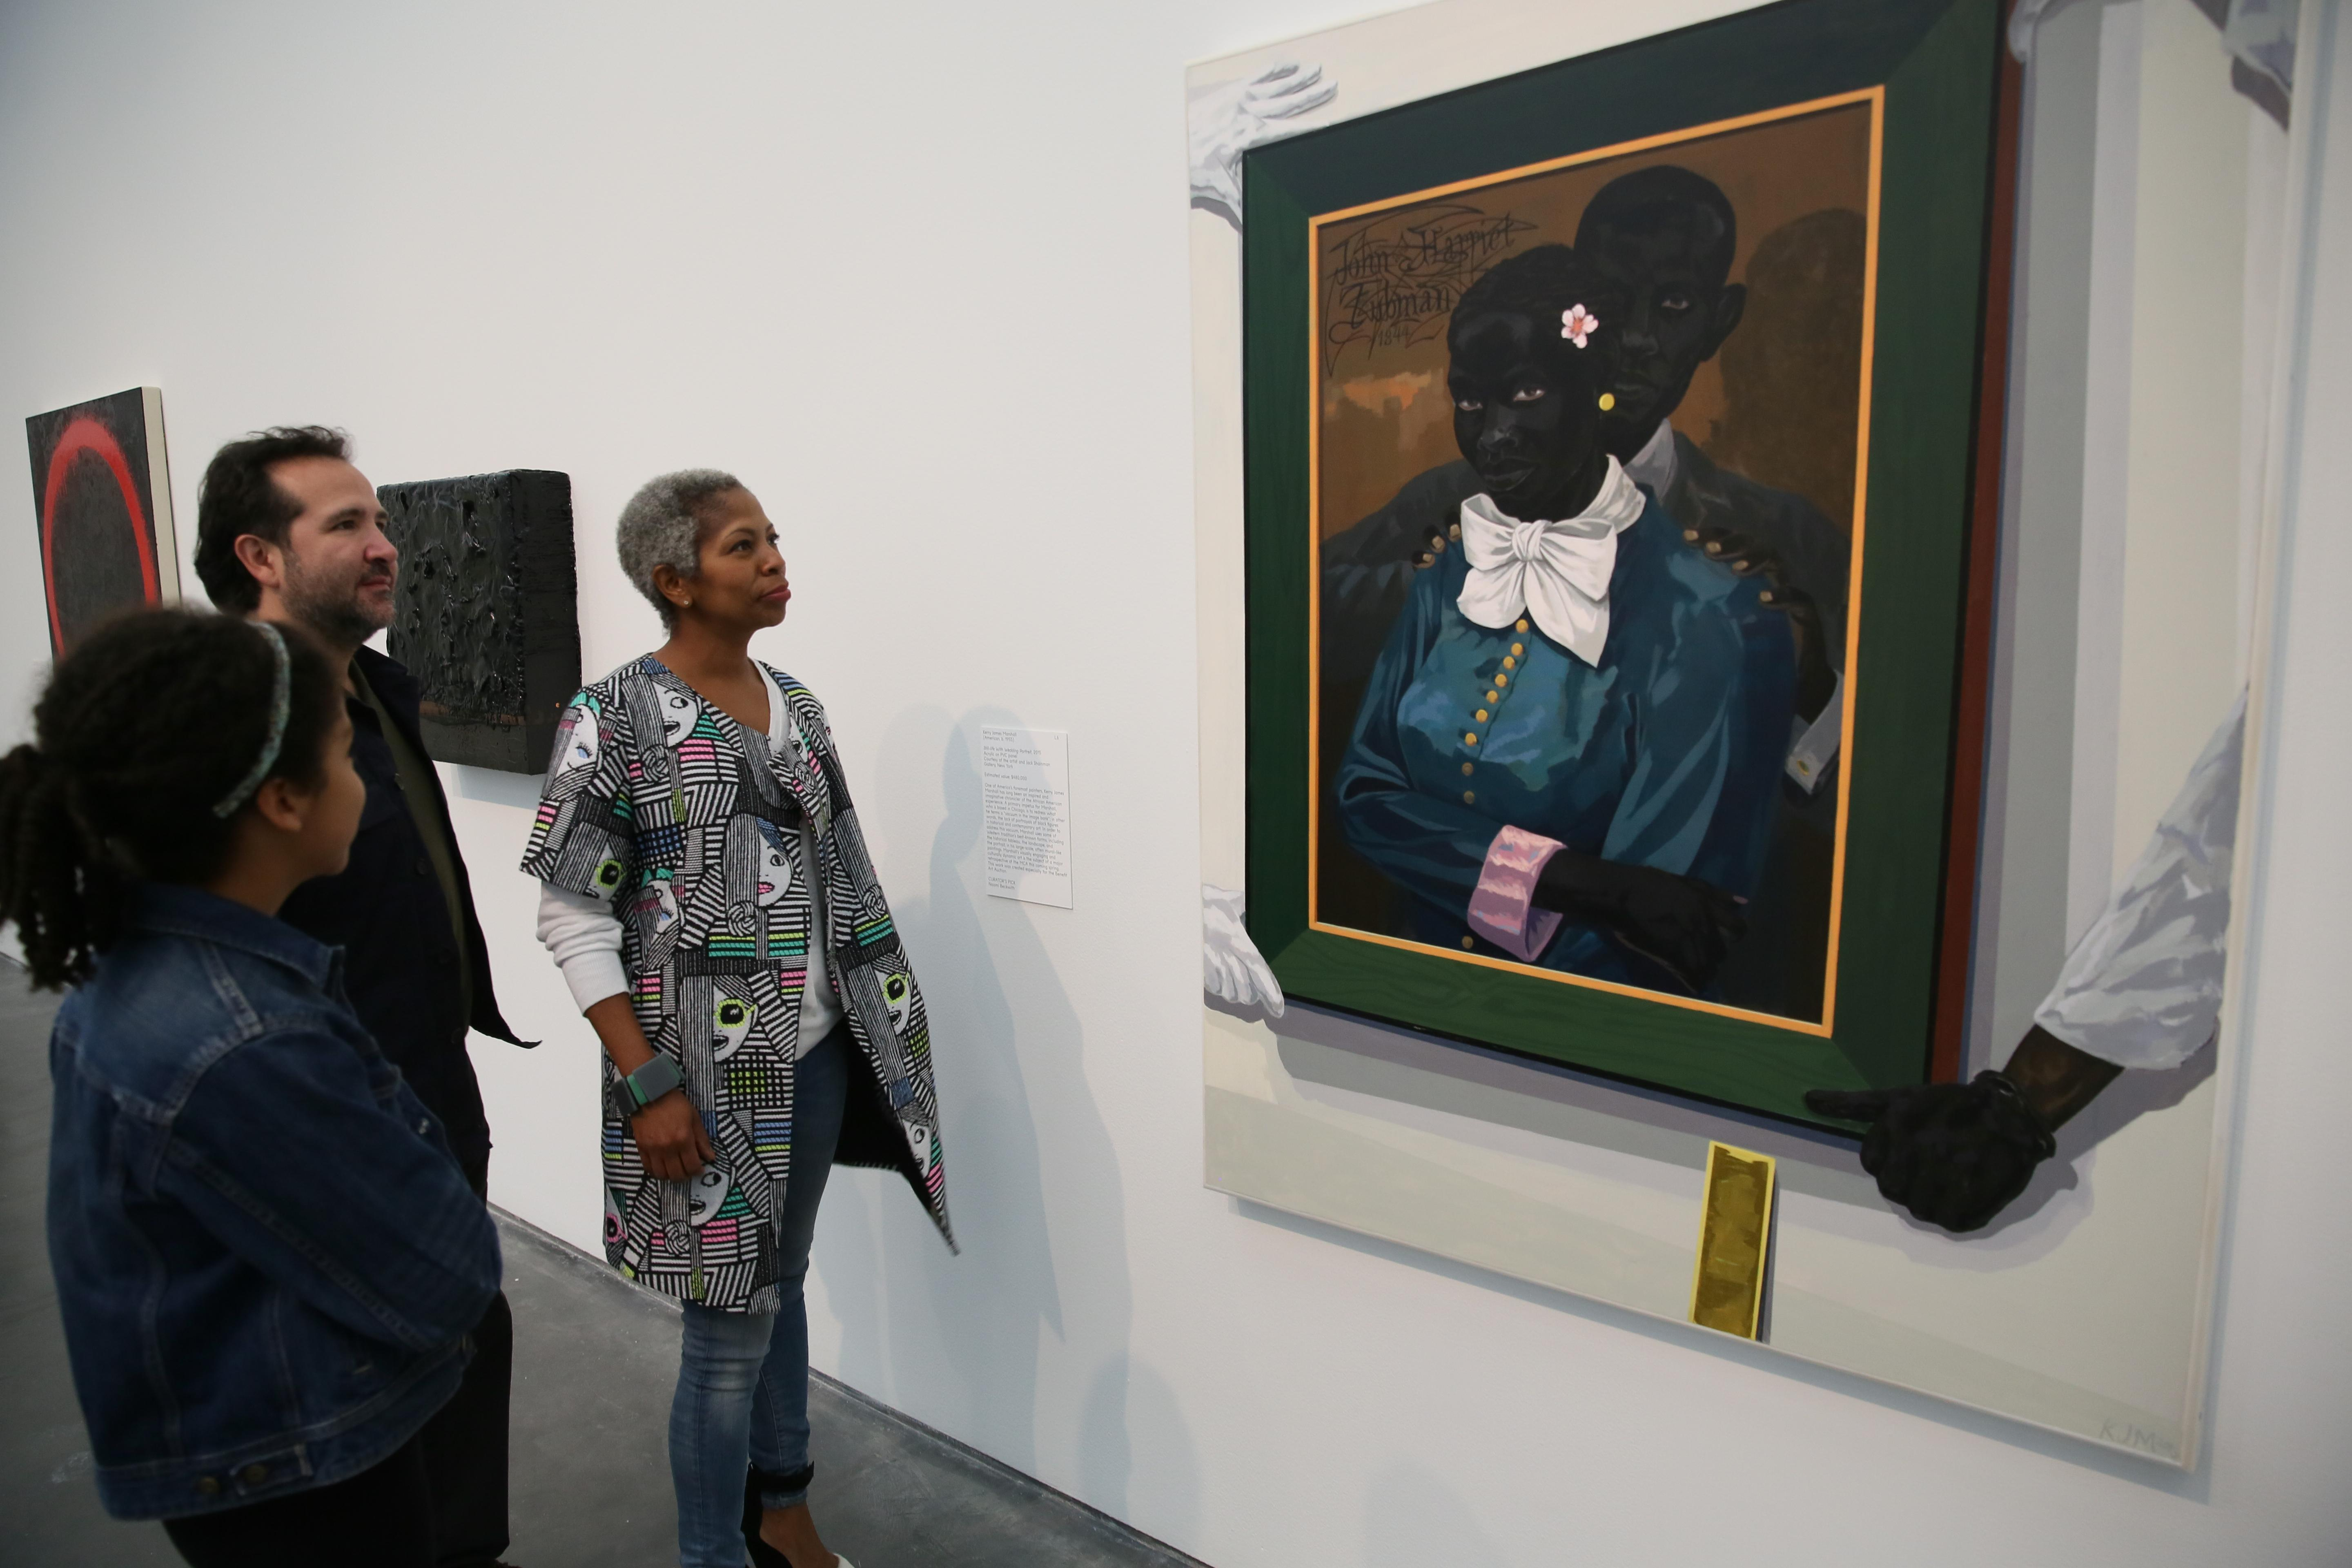 Three visitors look at a large painting, which depicts a painting of Harriet Tubman and her husband. The painting shows the portrait being held in place by men wearing gloves with a yellow level propped against the wall below.